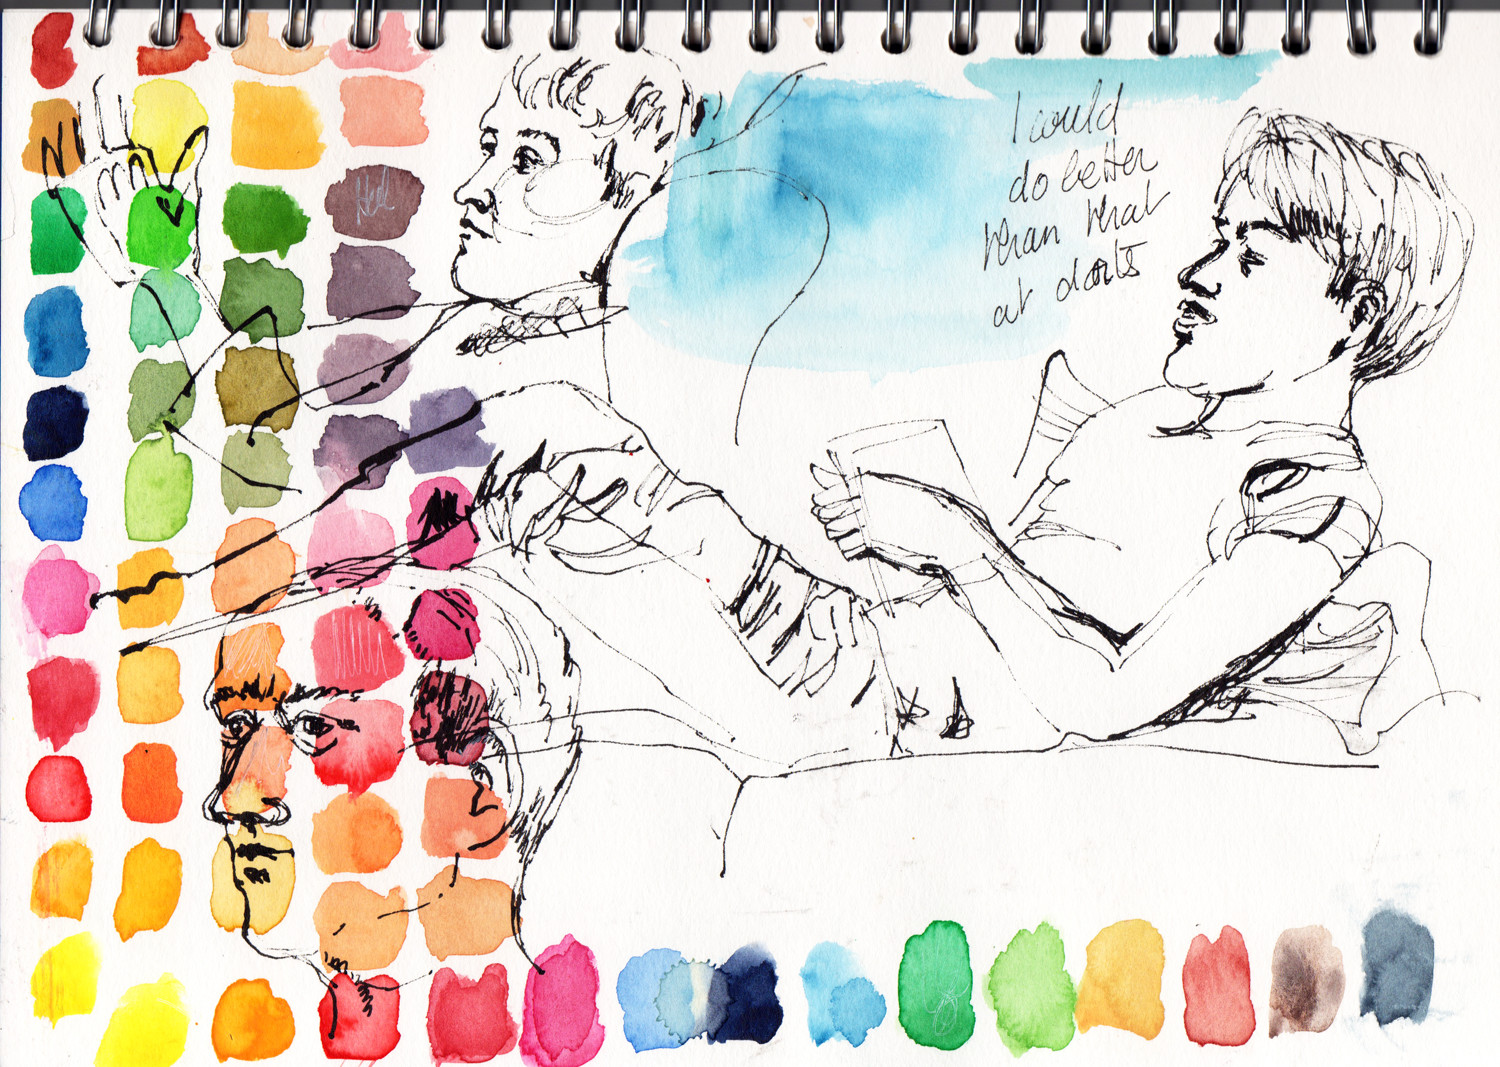 Sketchbook page in Watercolour and ink by Sophie Peanut